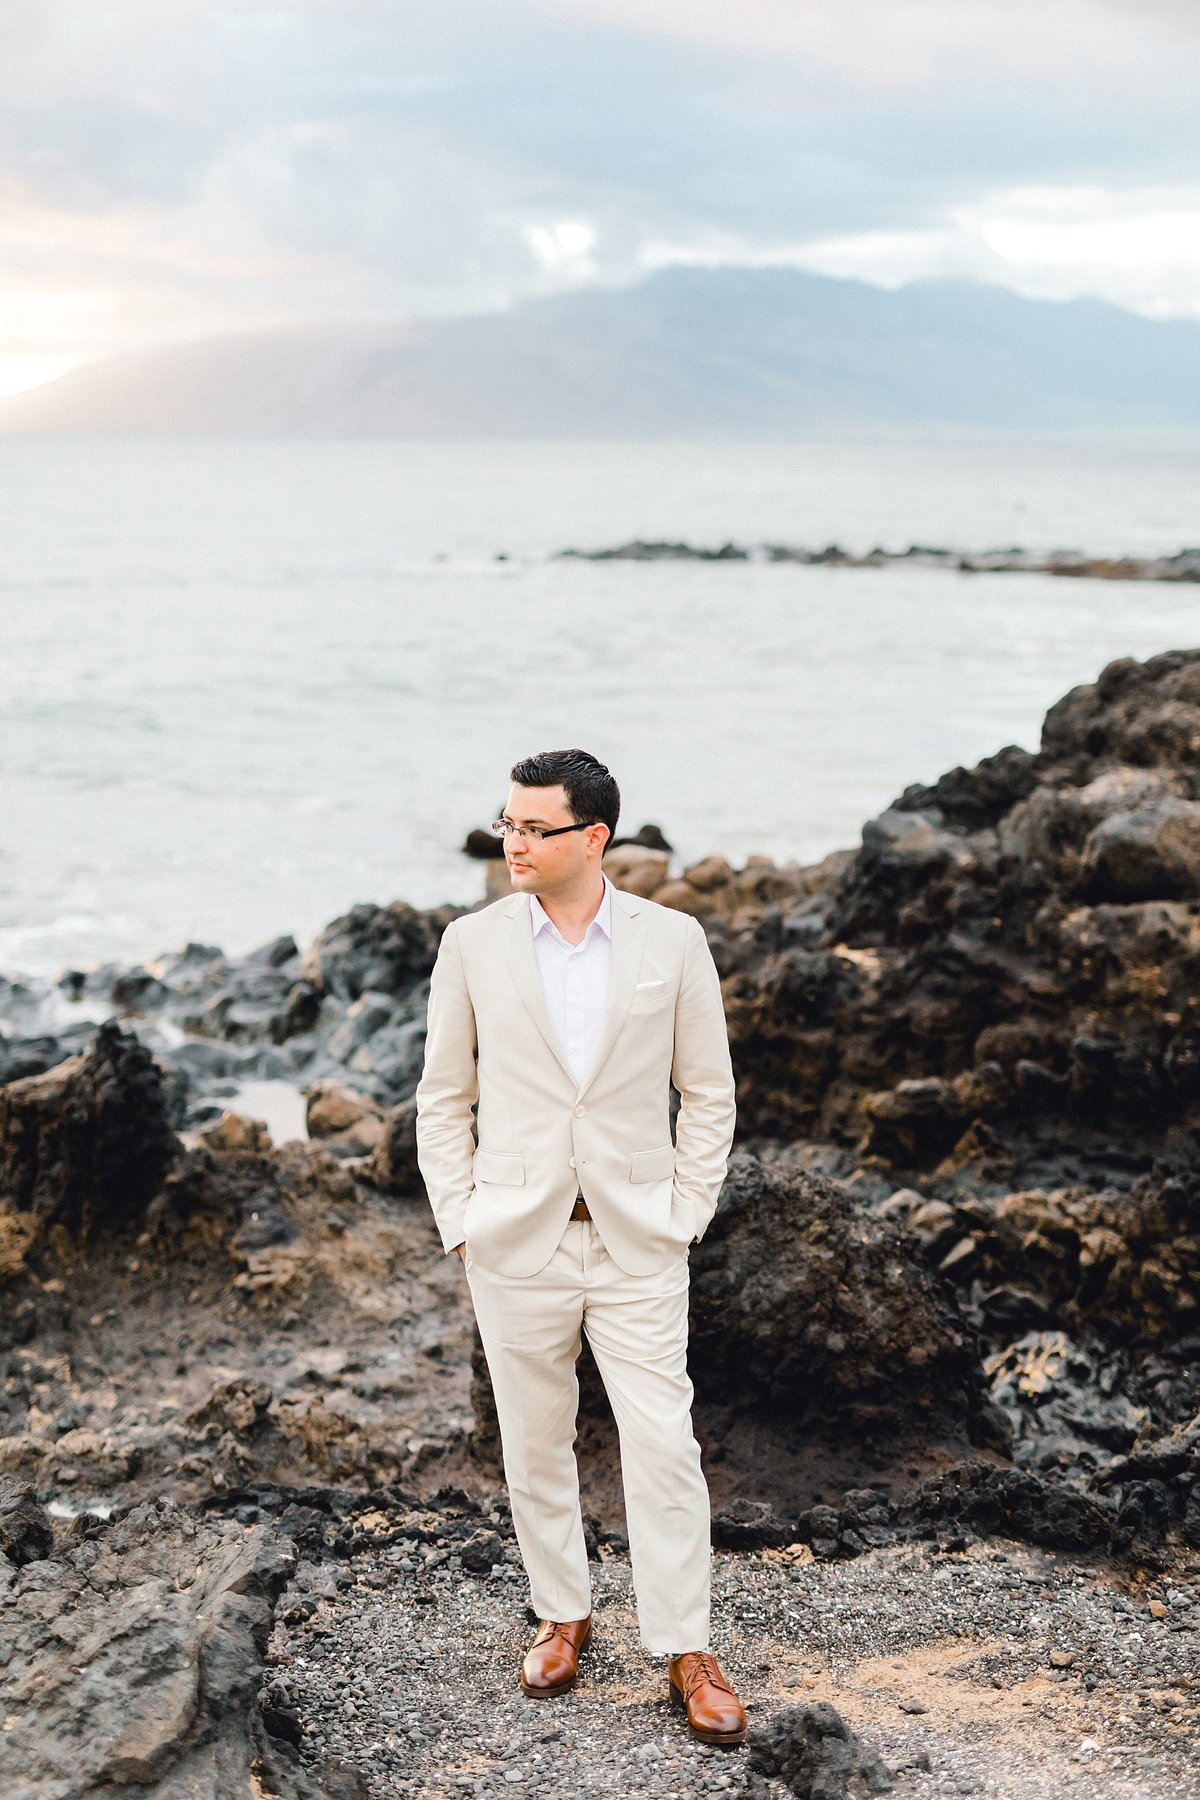 jenny_vargas-photography-maui-wedding-photographer-maui-wedding-photography-maui-photographer-maui-photographers-maui-elopement-photographer-maui-elopement-maui-wedding-maui-engagement-photographer_0944